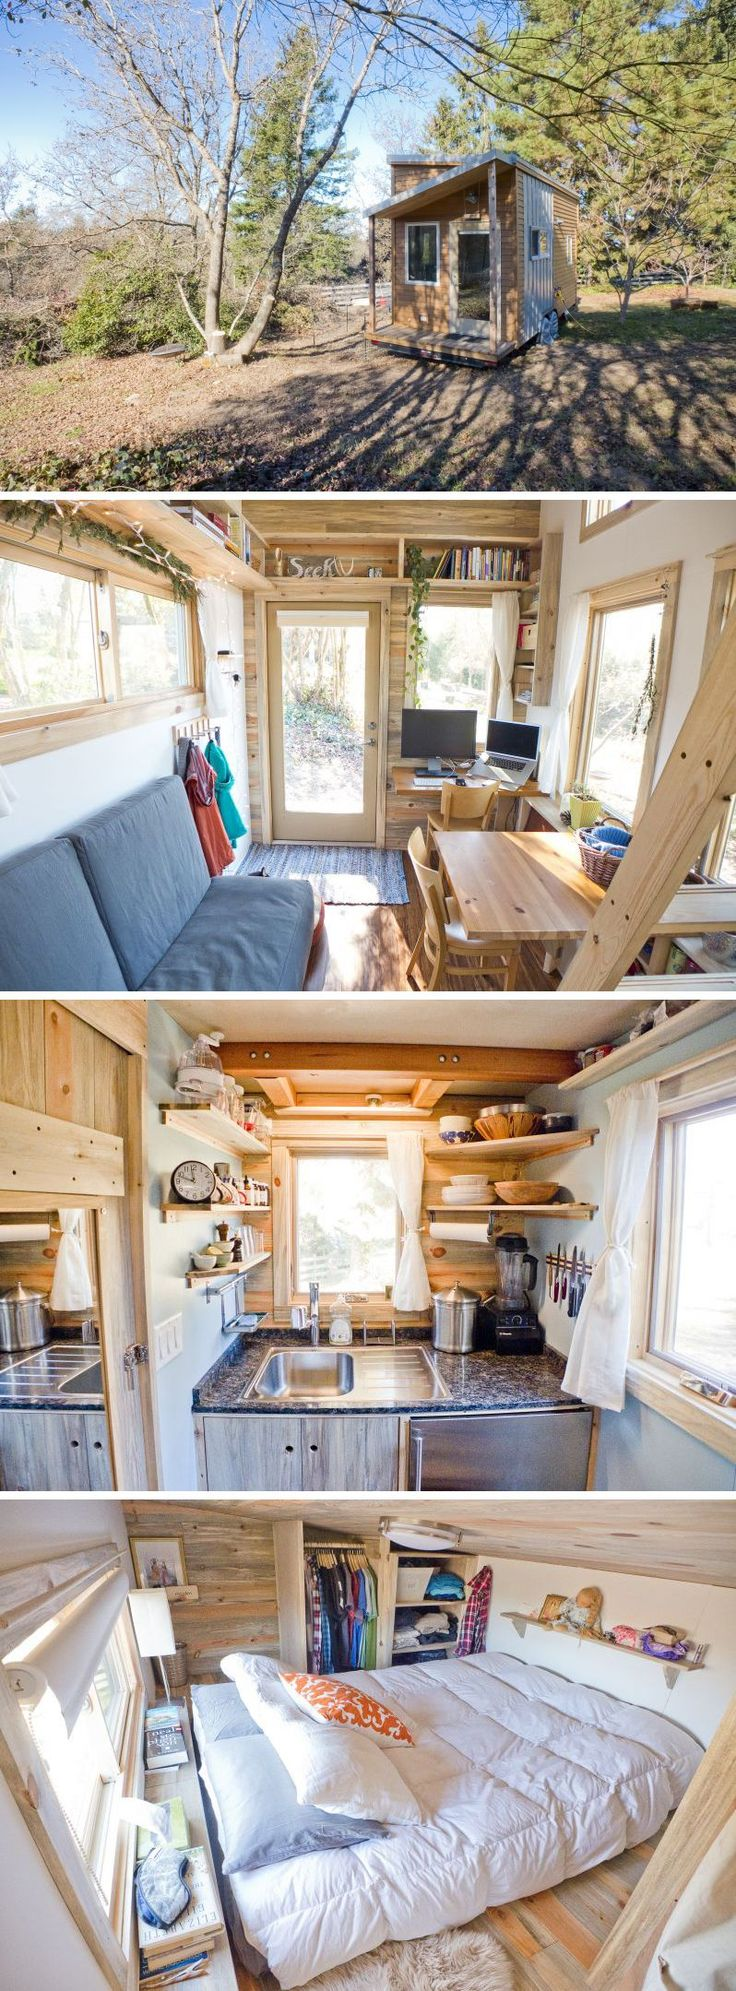 12 best House images on Pinterest | Good ideas, Cool ideas and ...